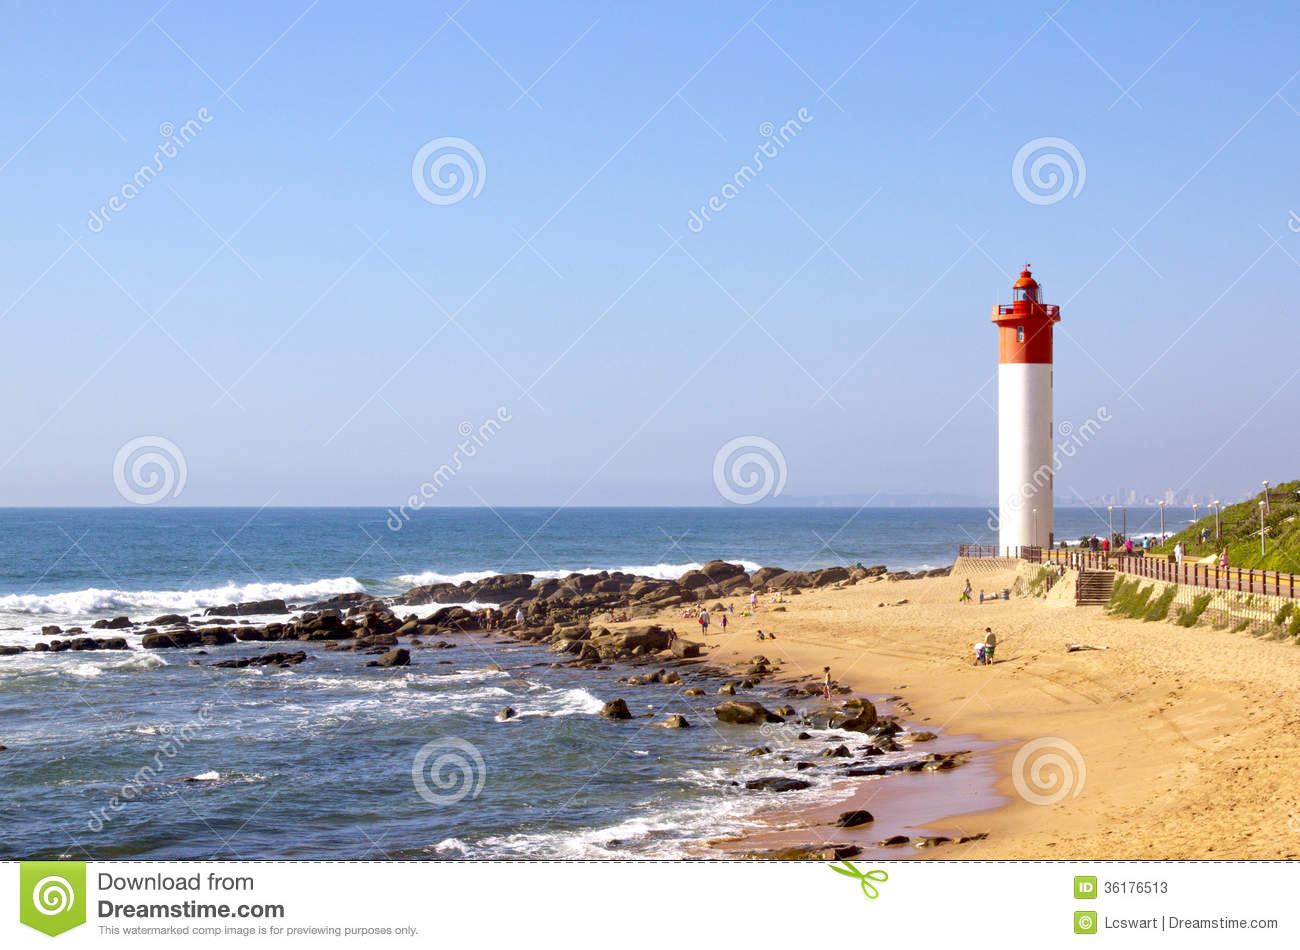 Red And White Lighthouse On Beach In Umhlanga Rocks, Durban.